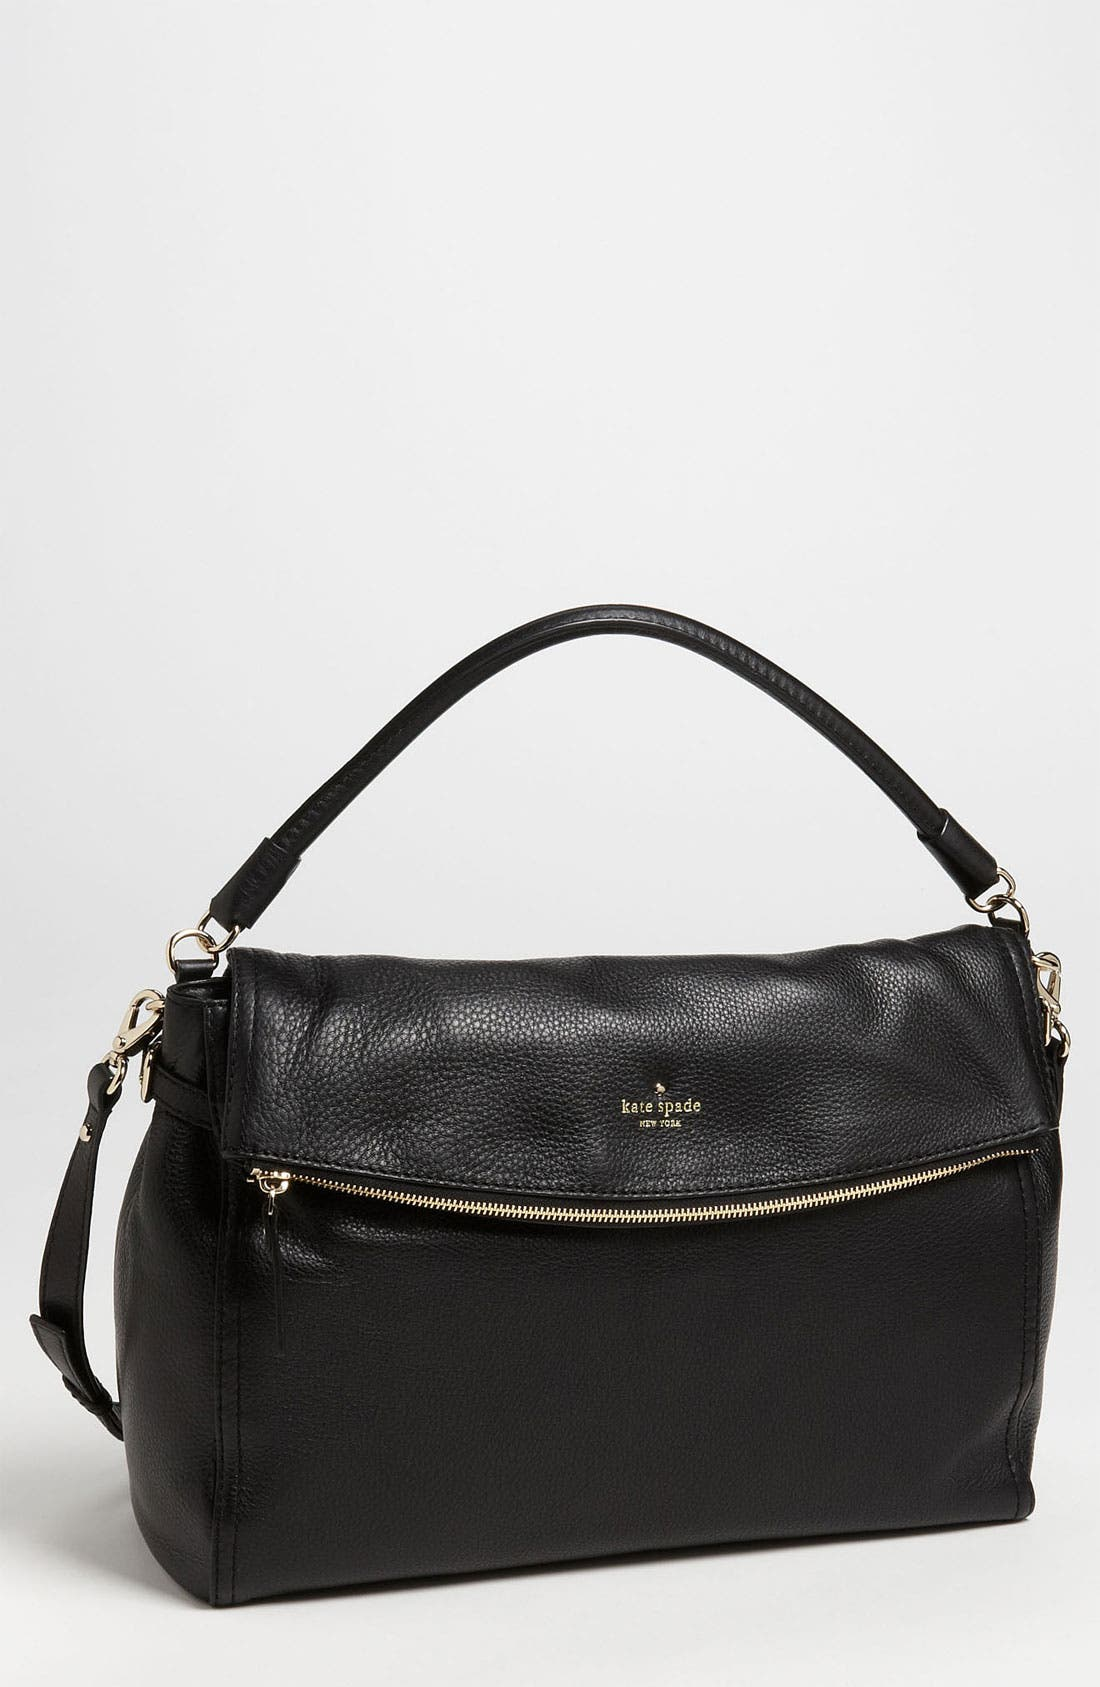 Alternate Image 1 Selected - kate spade new york 'cobble hill - minka' shoulder bag